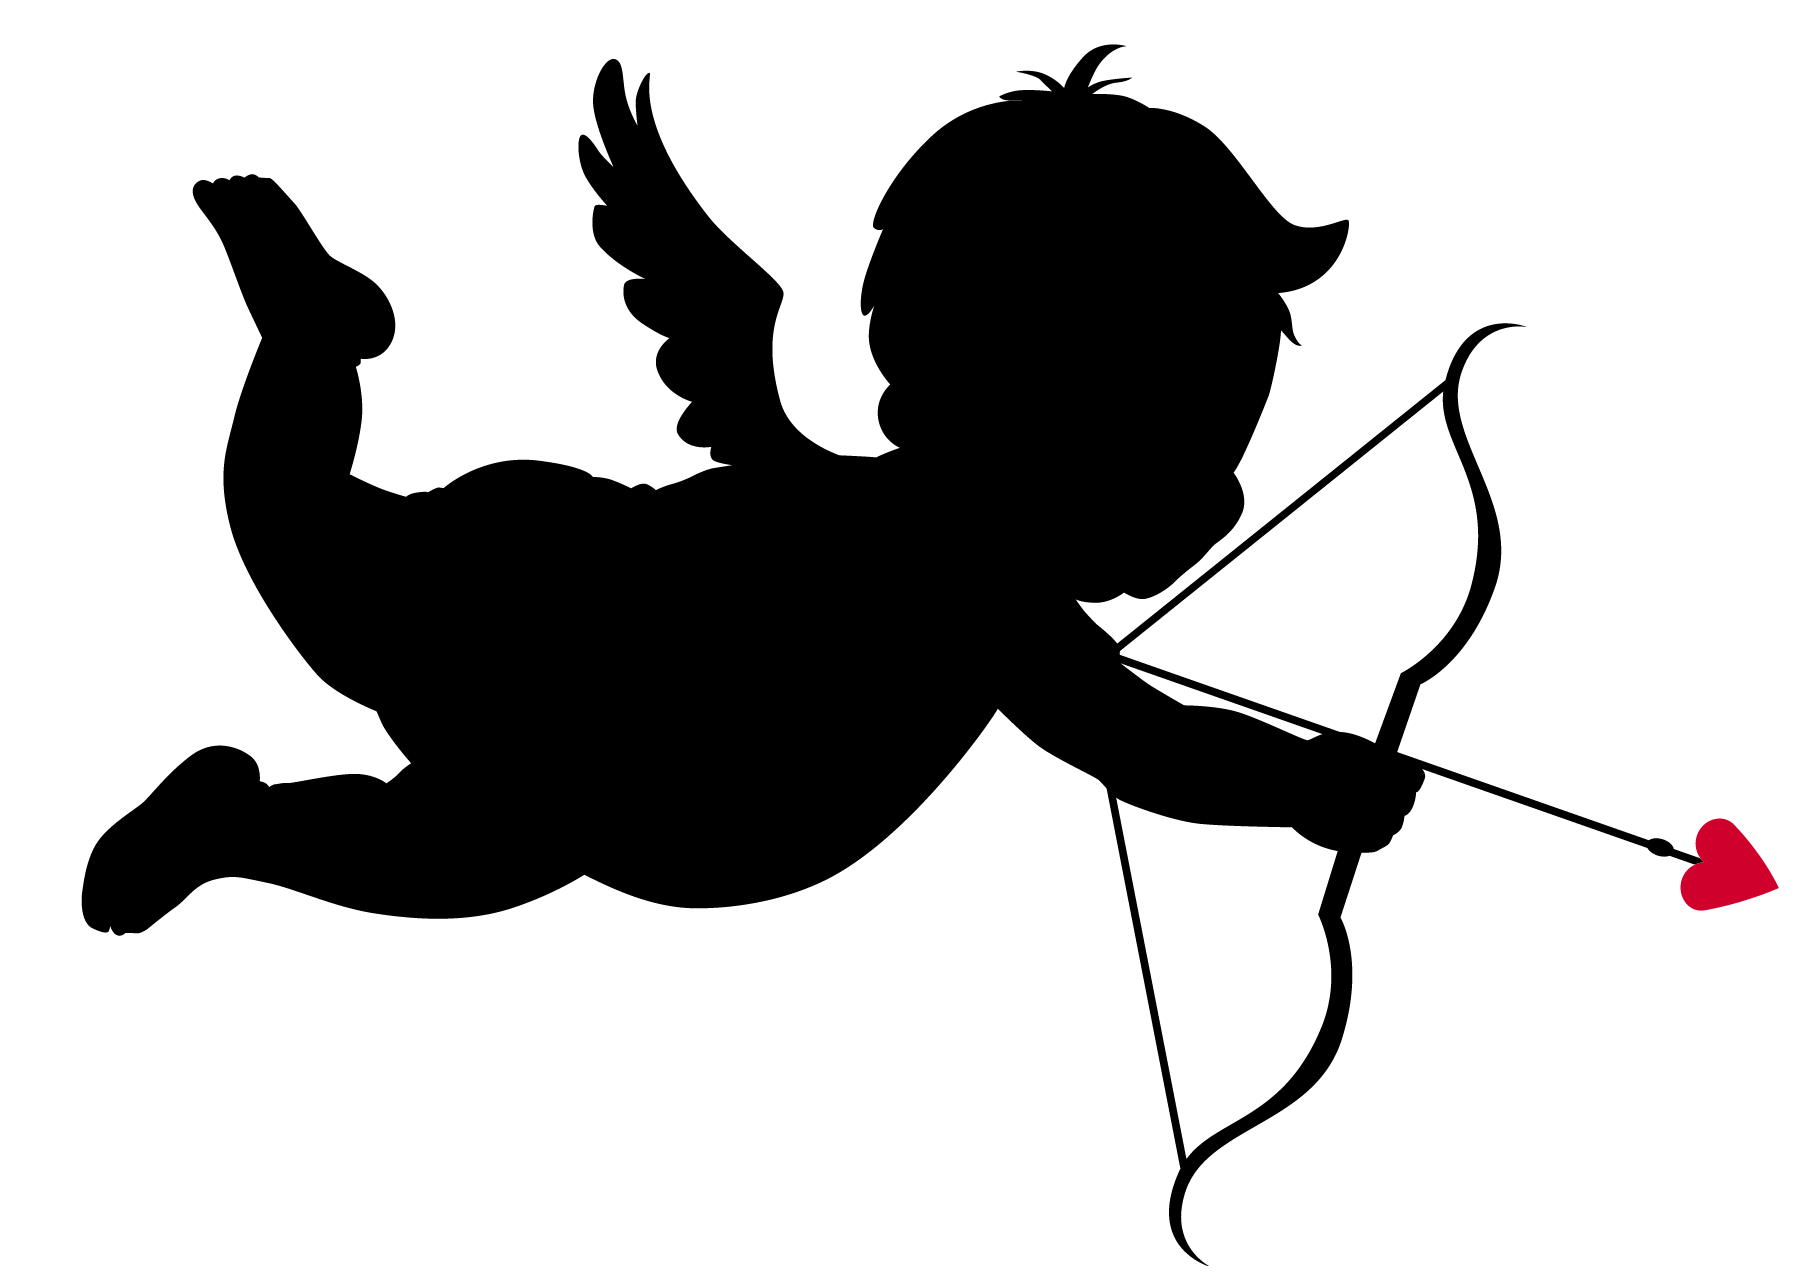 Arrow clip art silhouette. At getdrawings com free